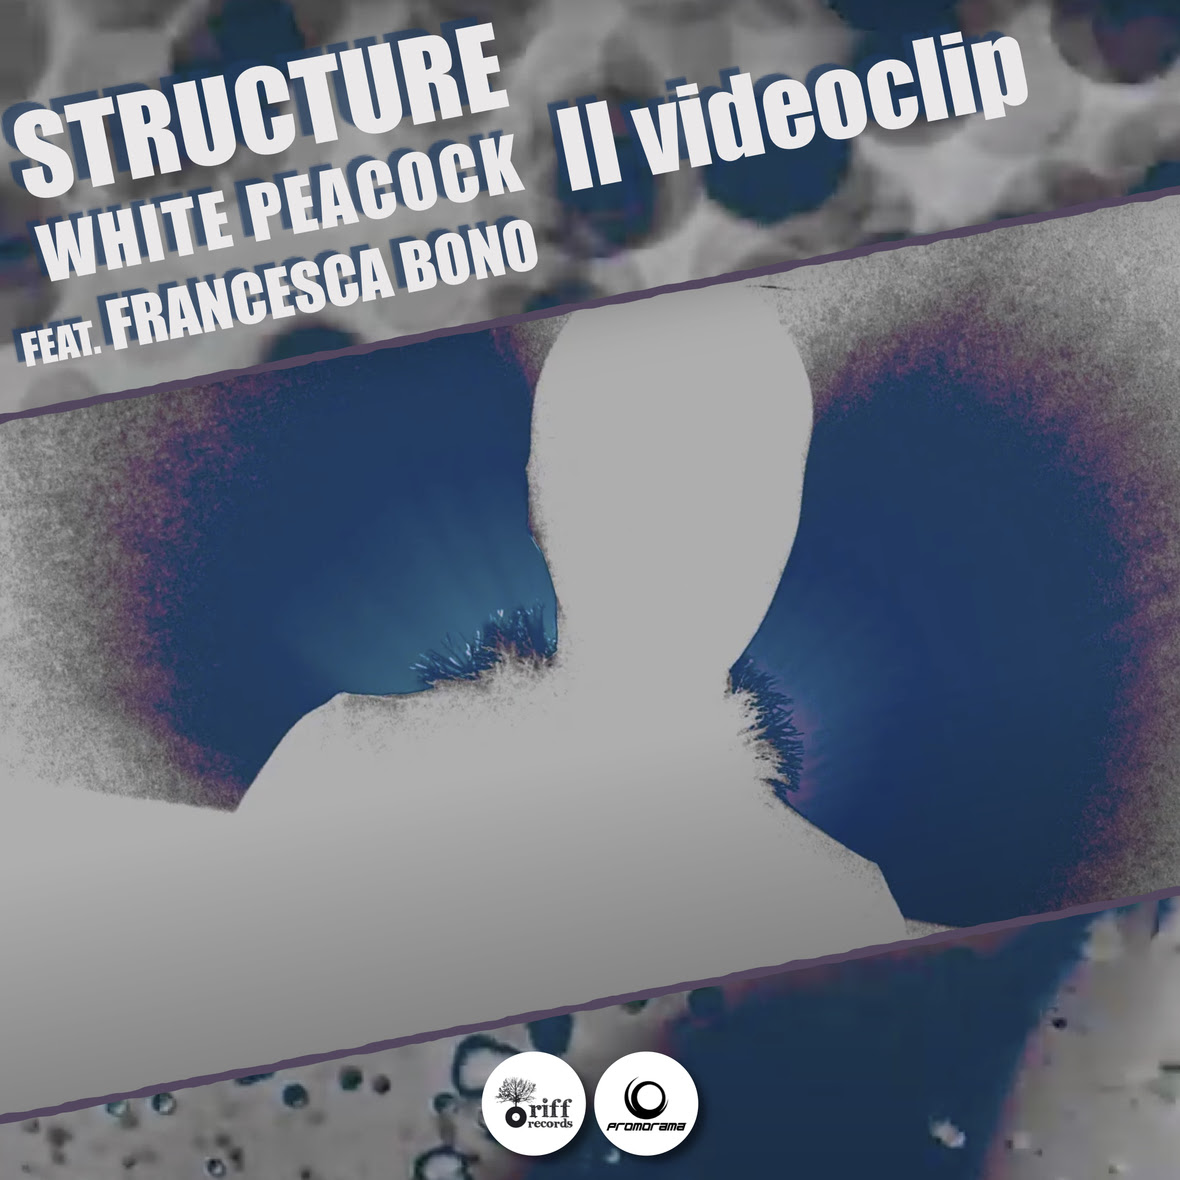 Structure - White Peacock videoclip